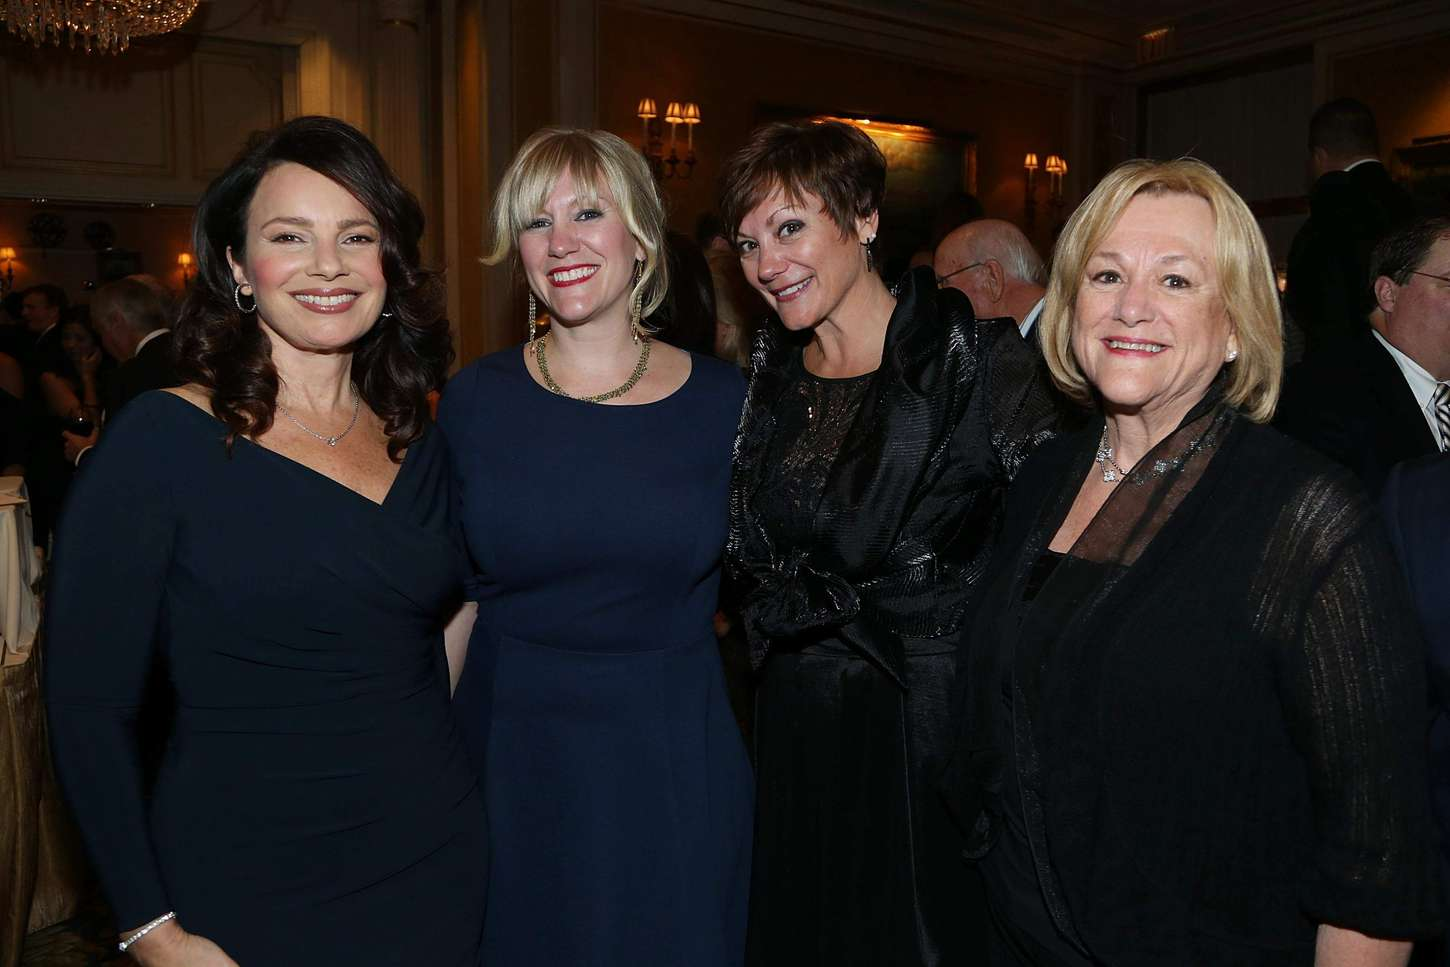 Fran Drescher Cancer Research and Treatment Fund Dinner Gala in New York